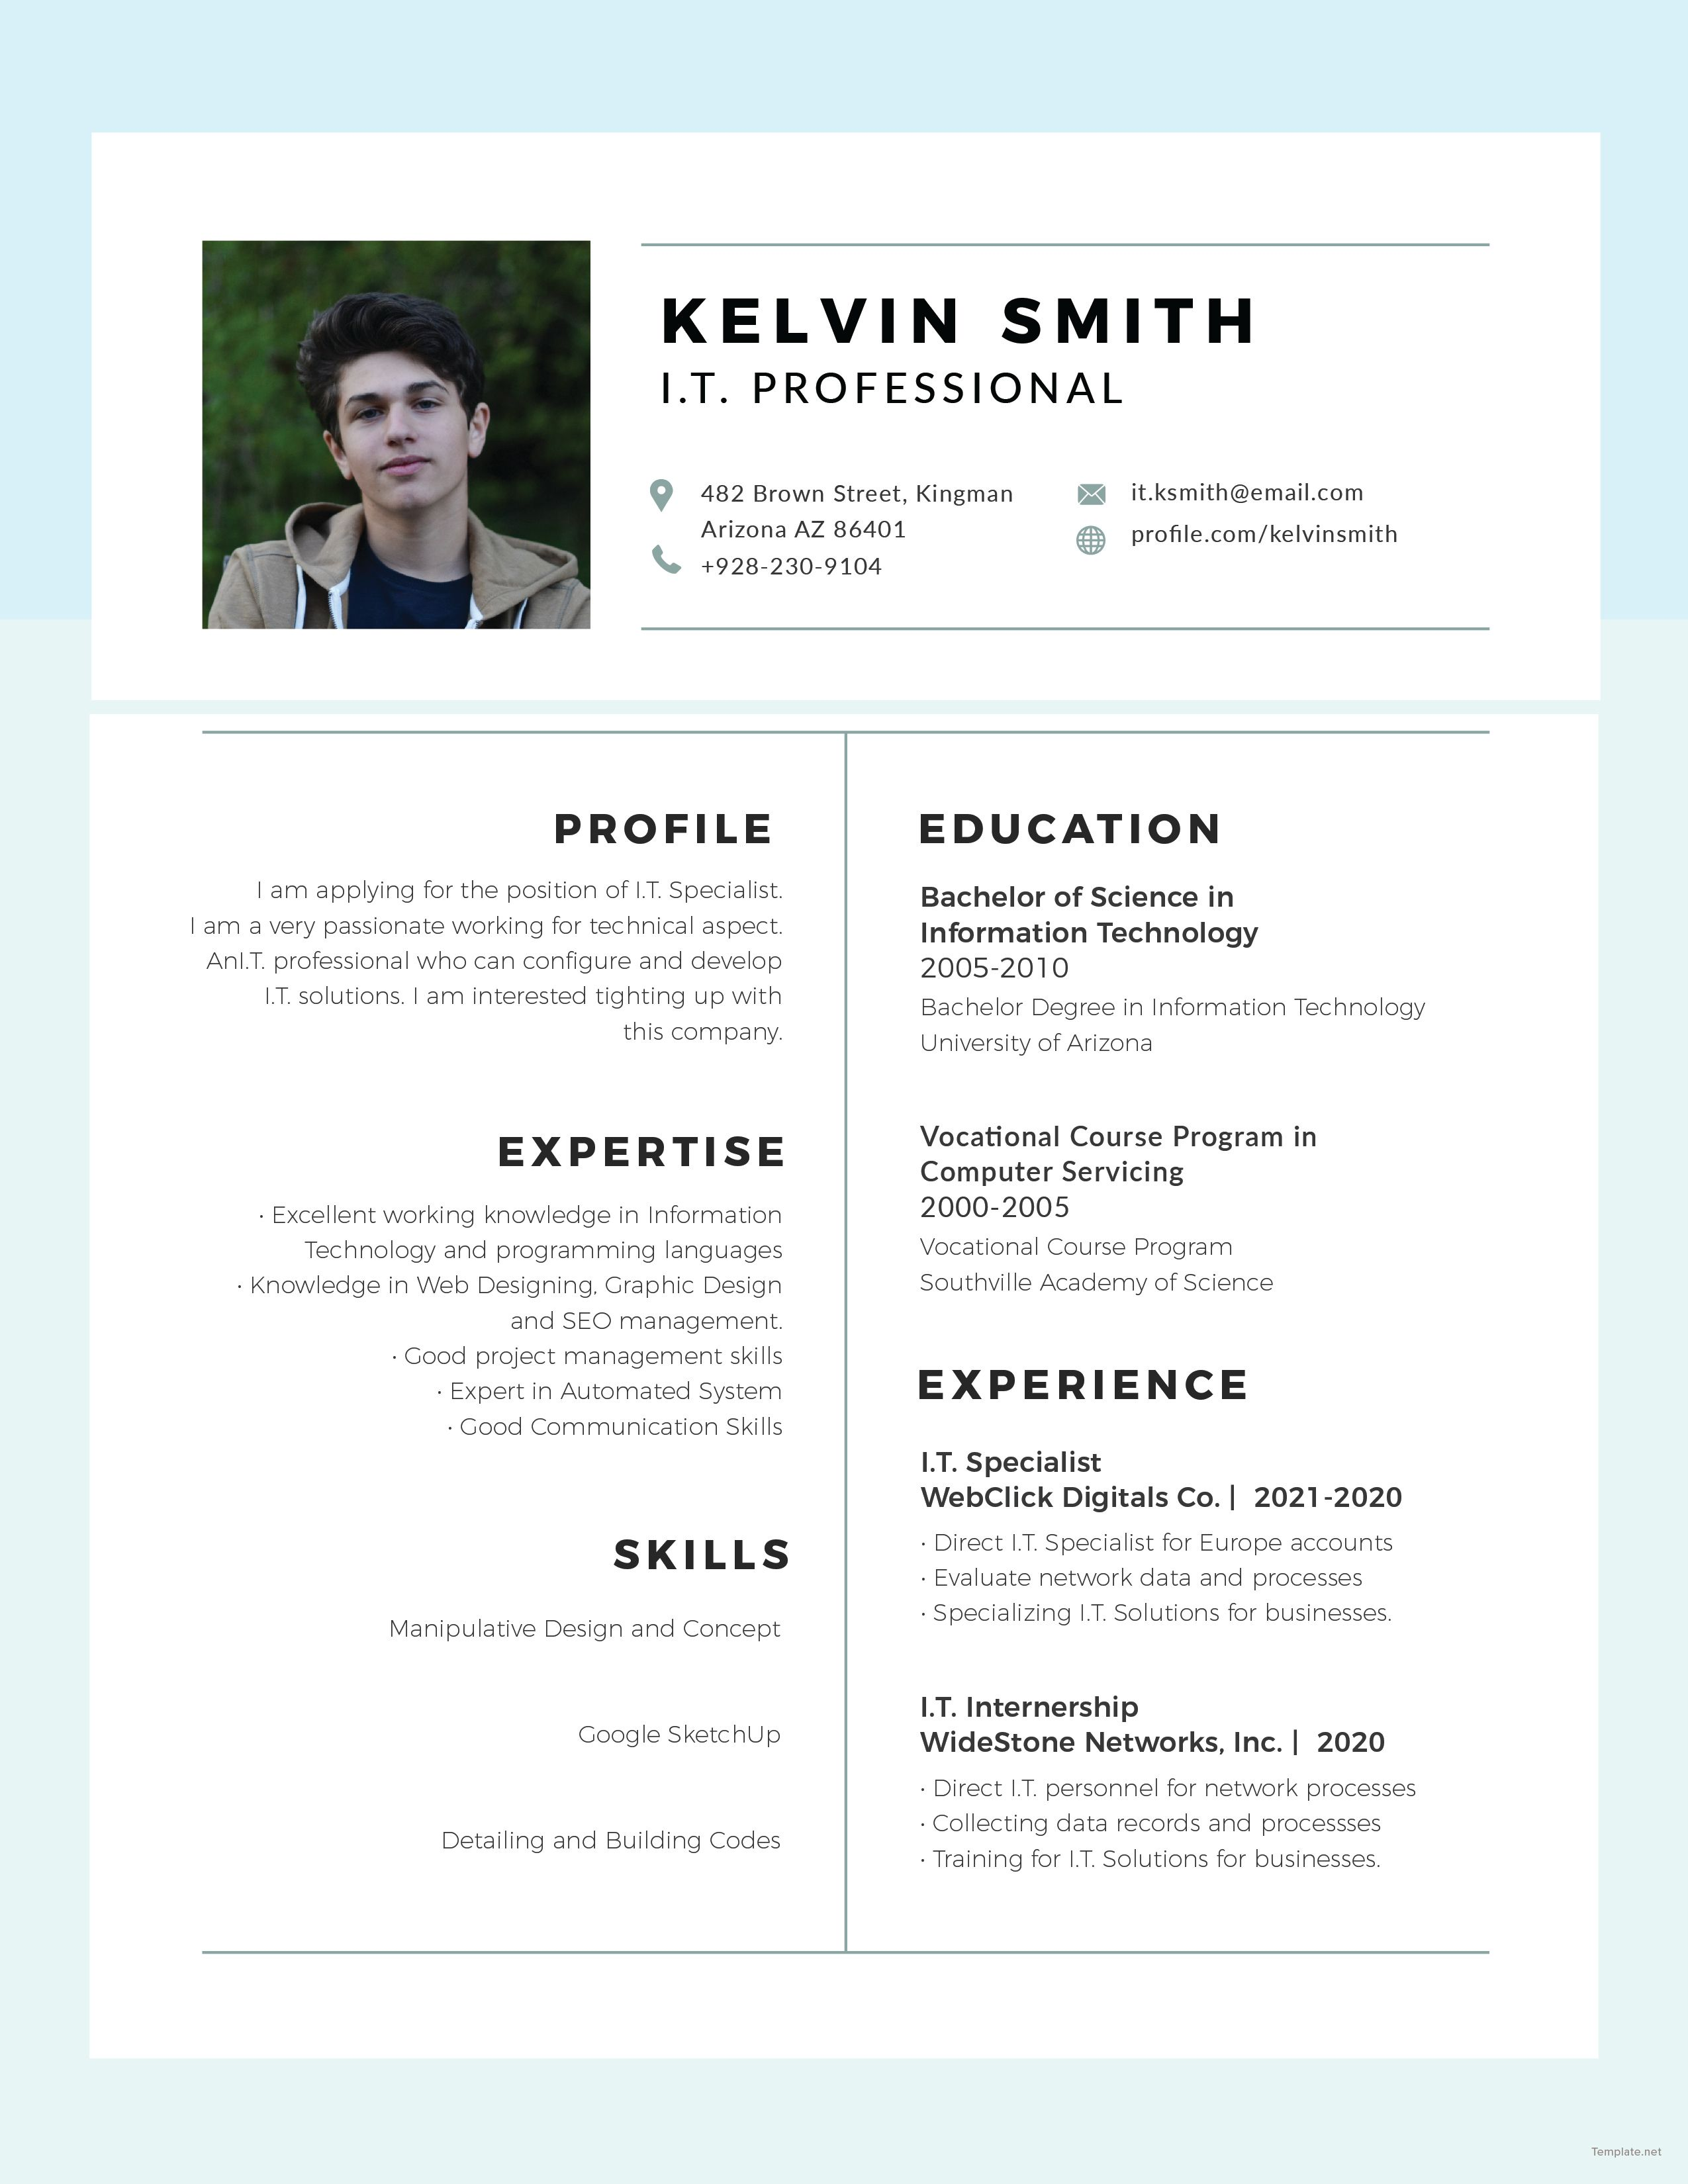 Free IT Professional Experience Resume Free professional